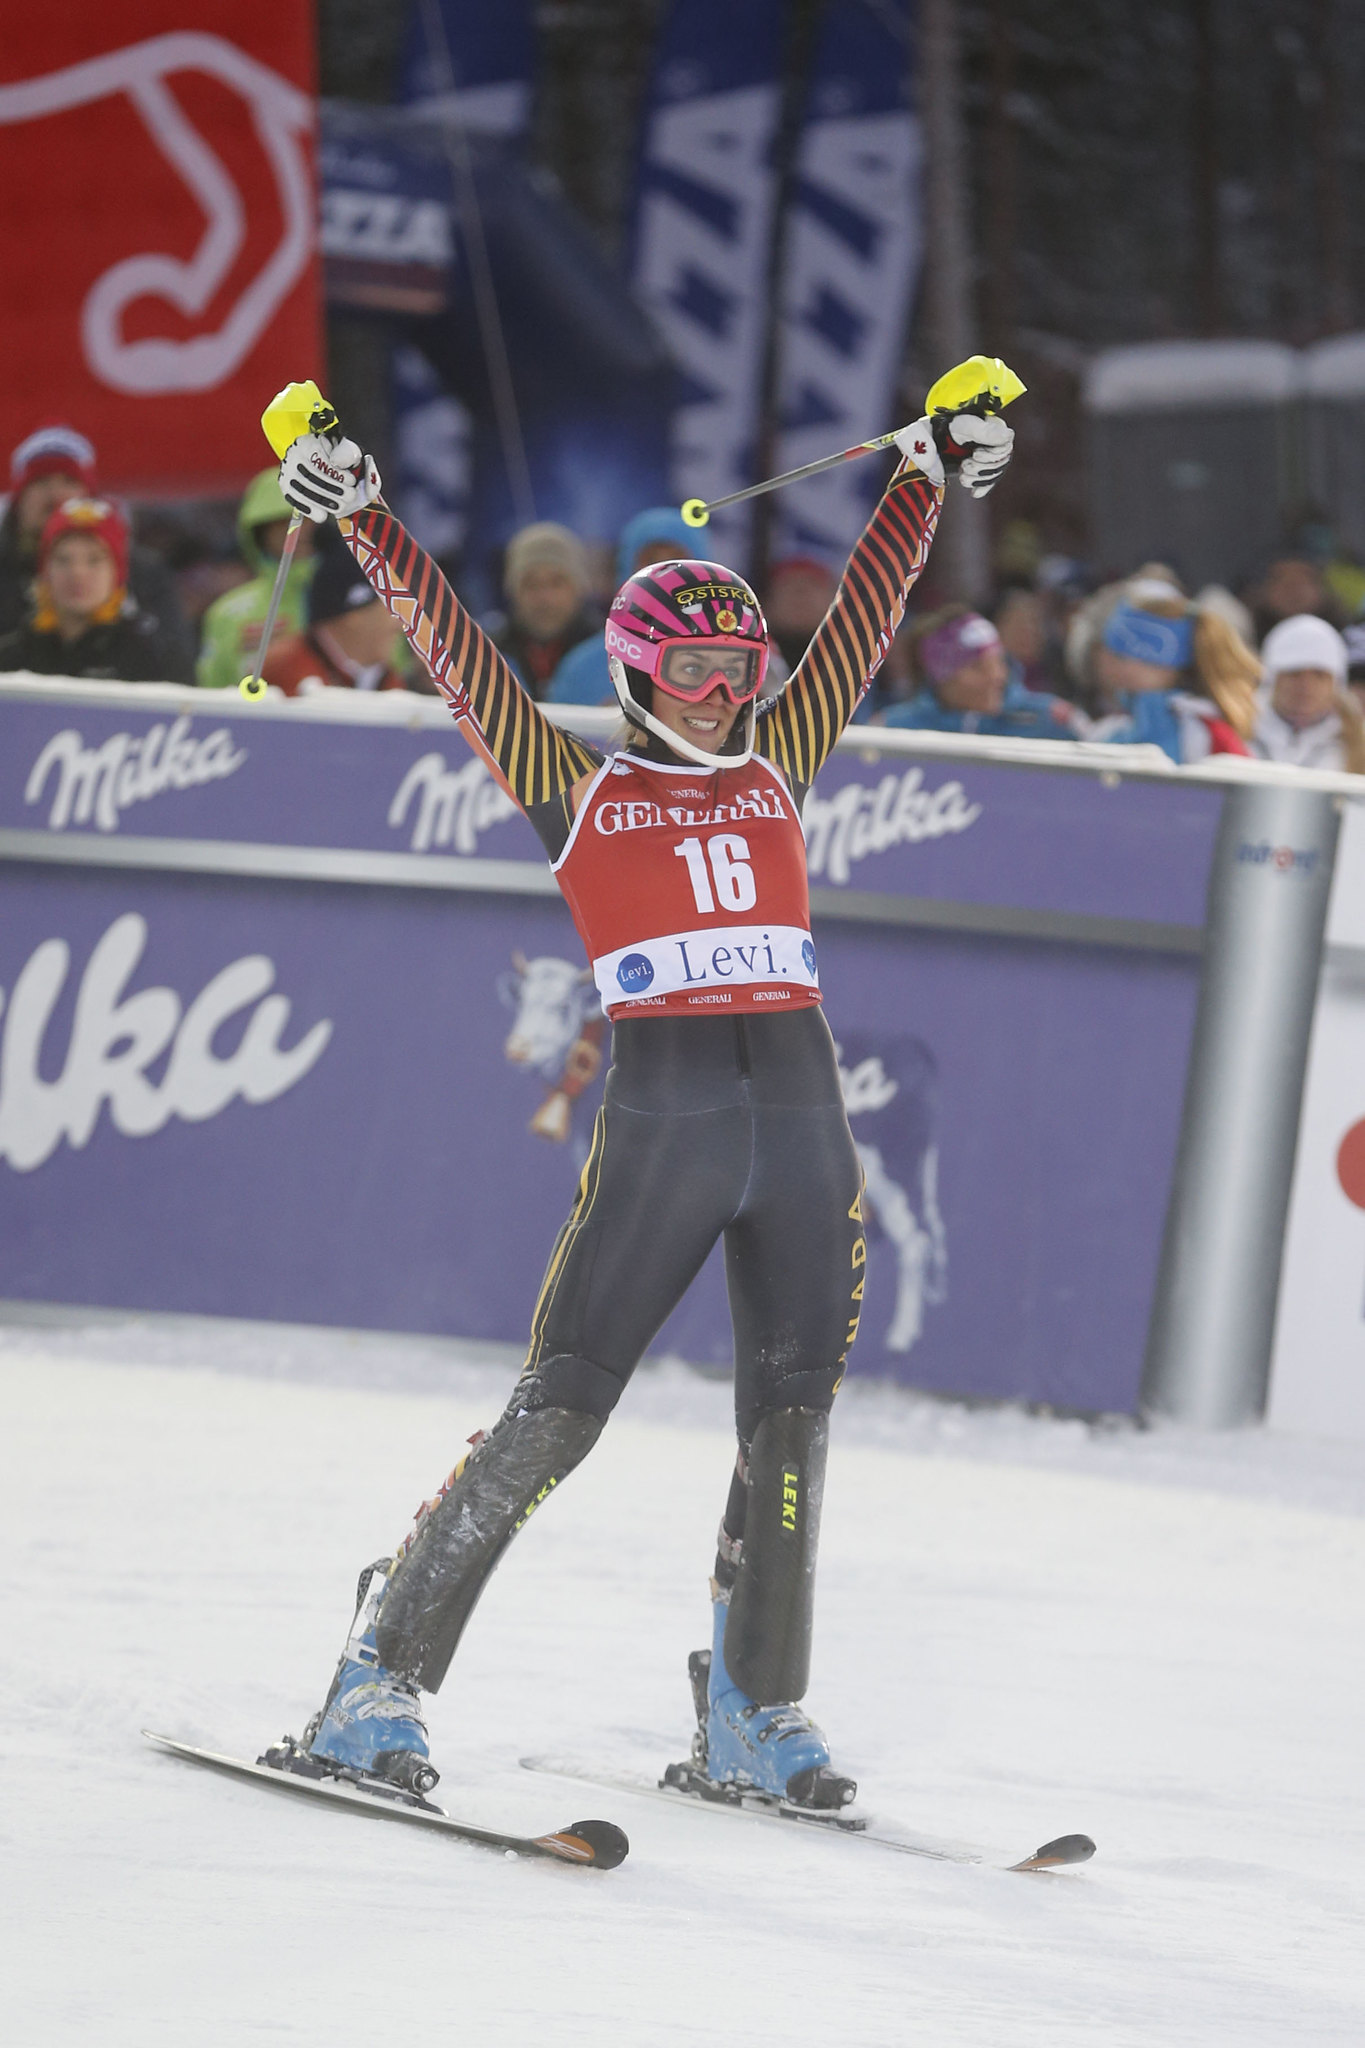 Marie-Michele Gagnon celebrates her 5th place finish in the slalom in Levi, FIN.